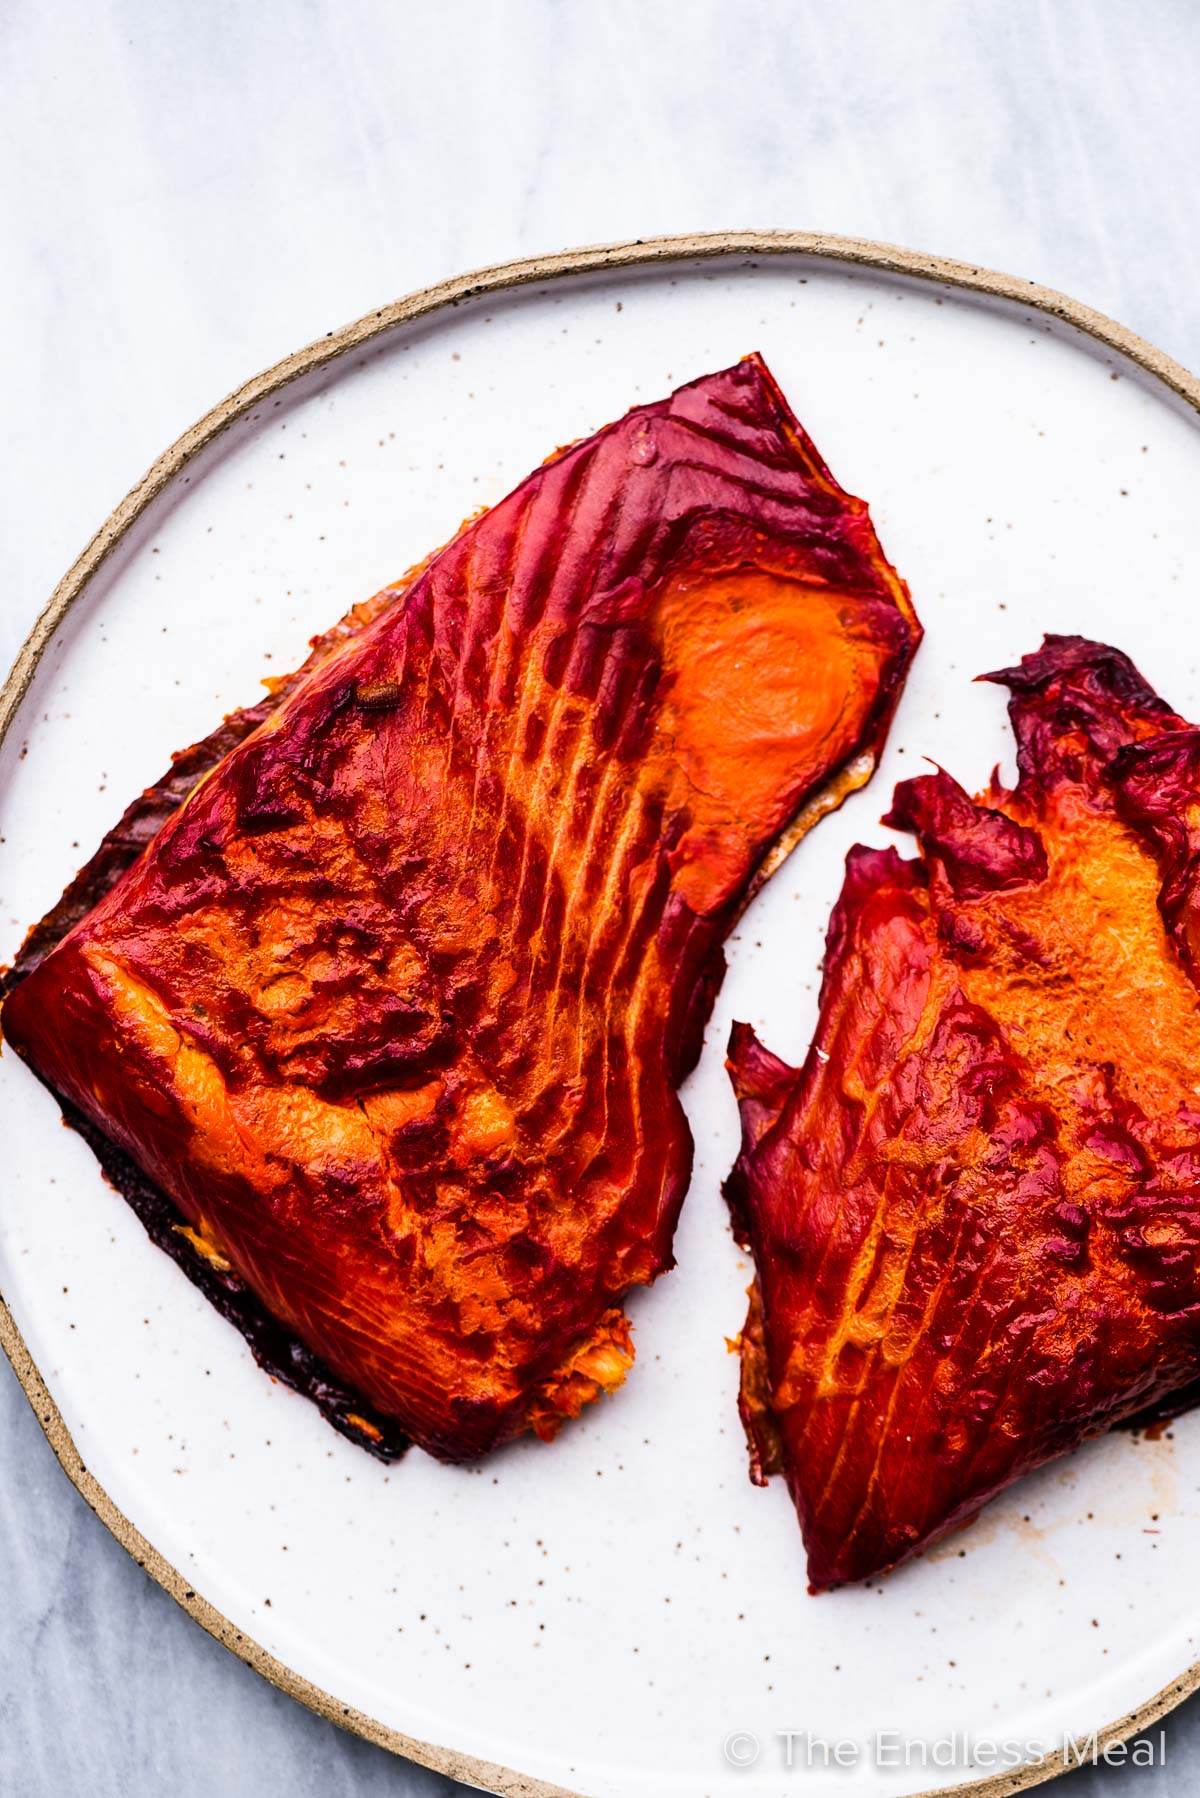 Two pieces of hot smoked salmon on a white plate.